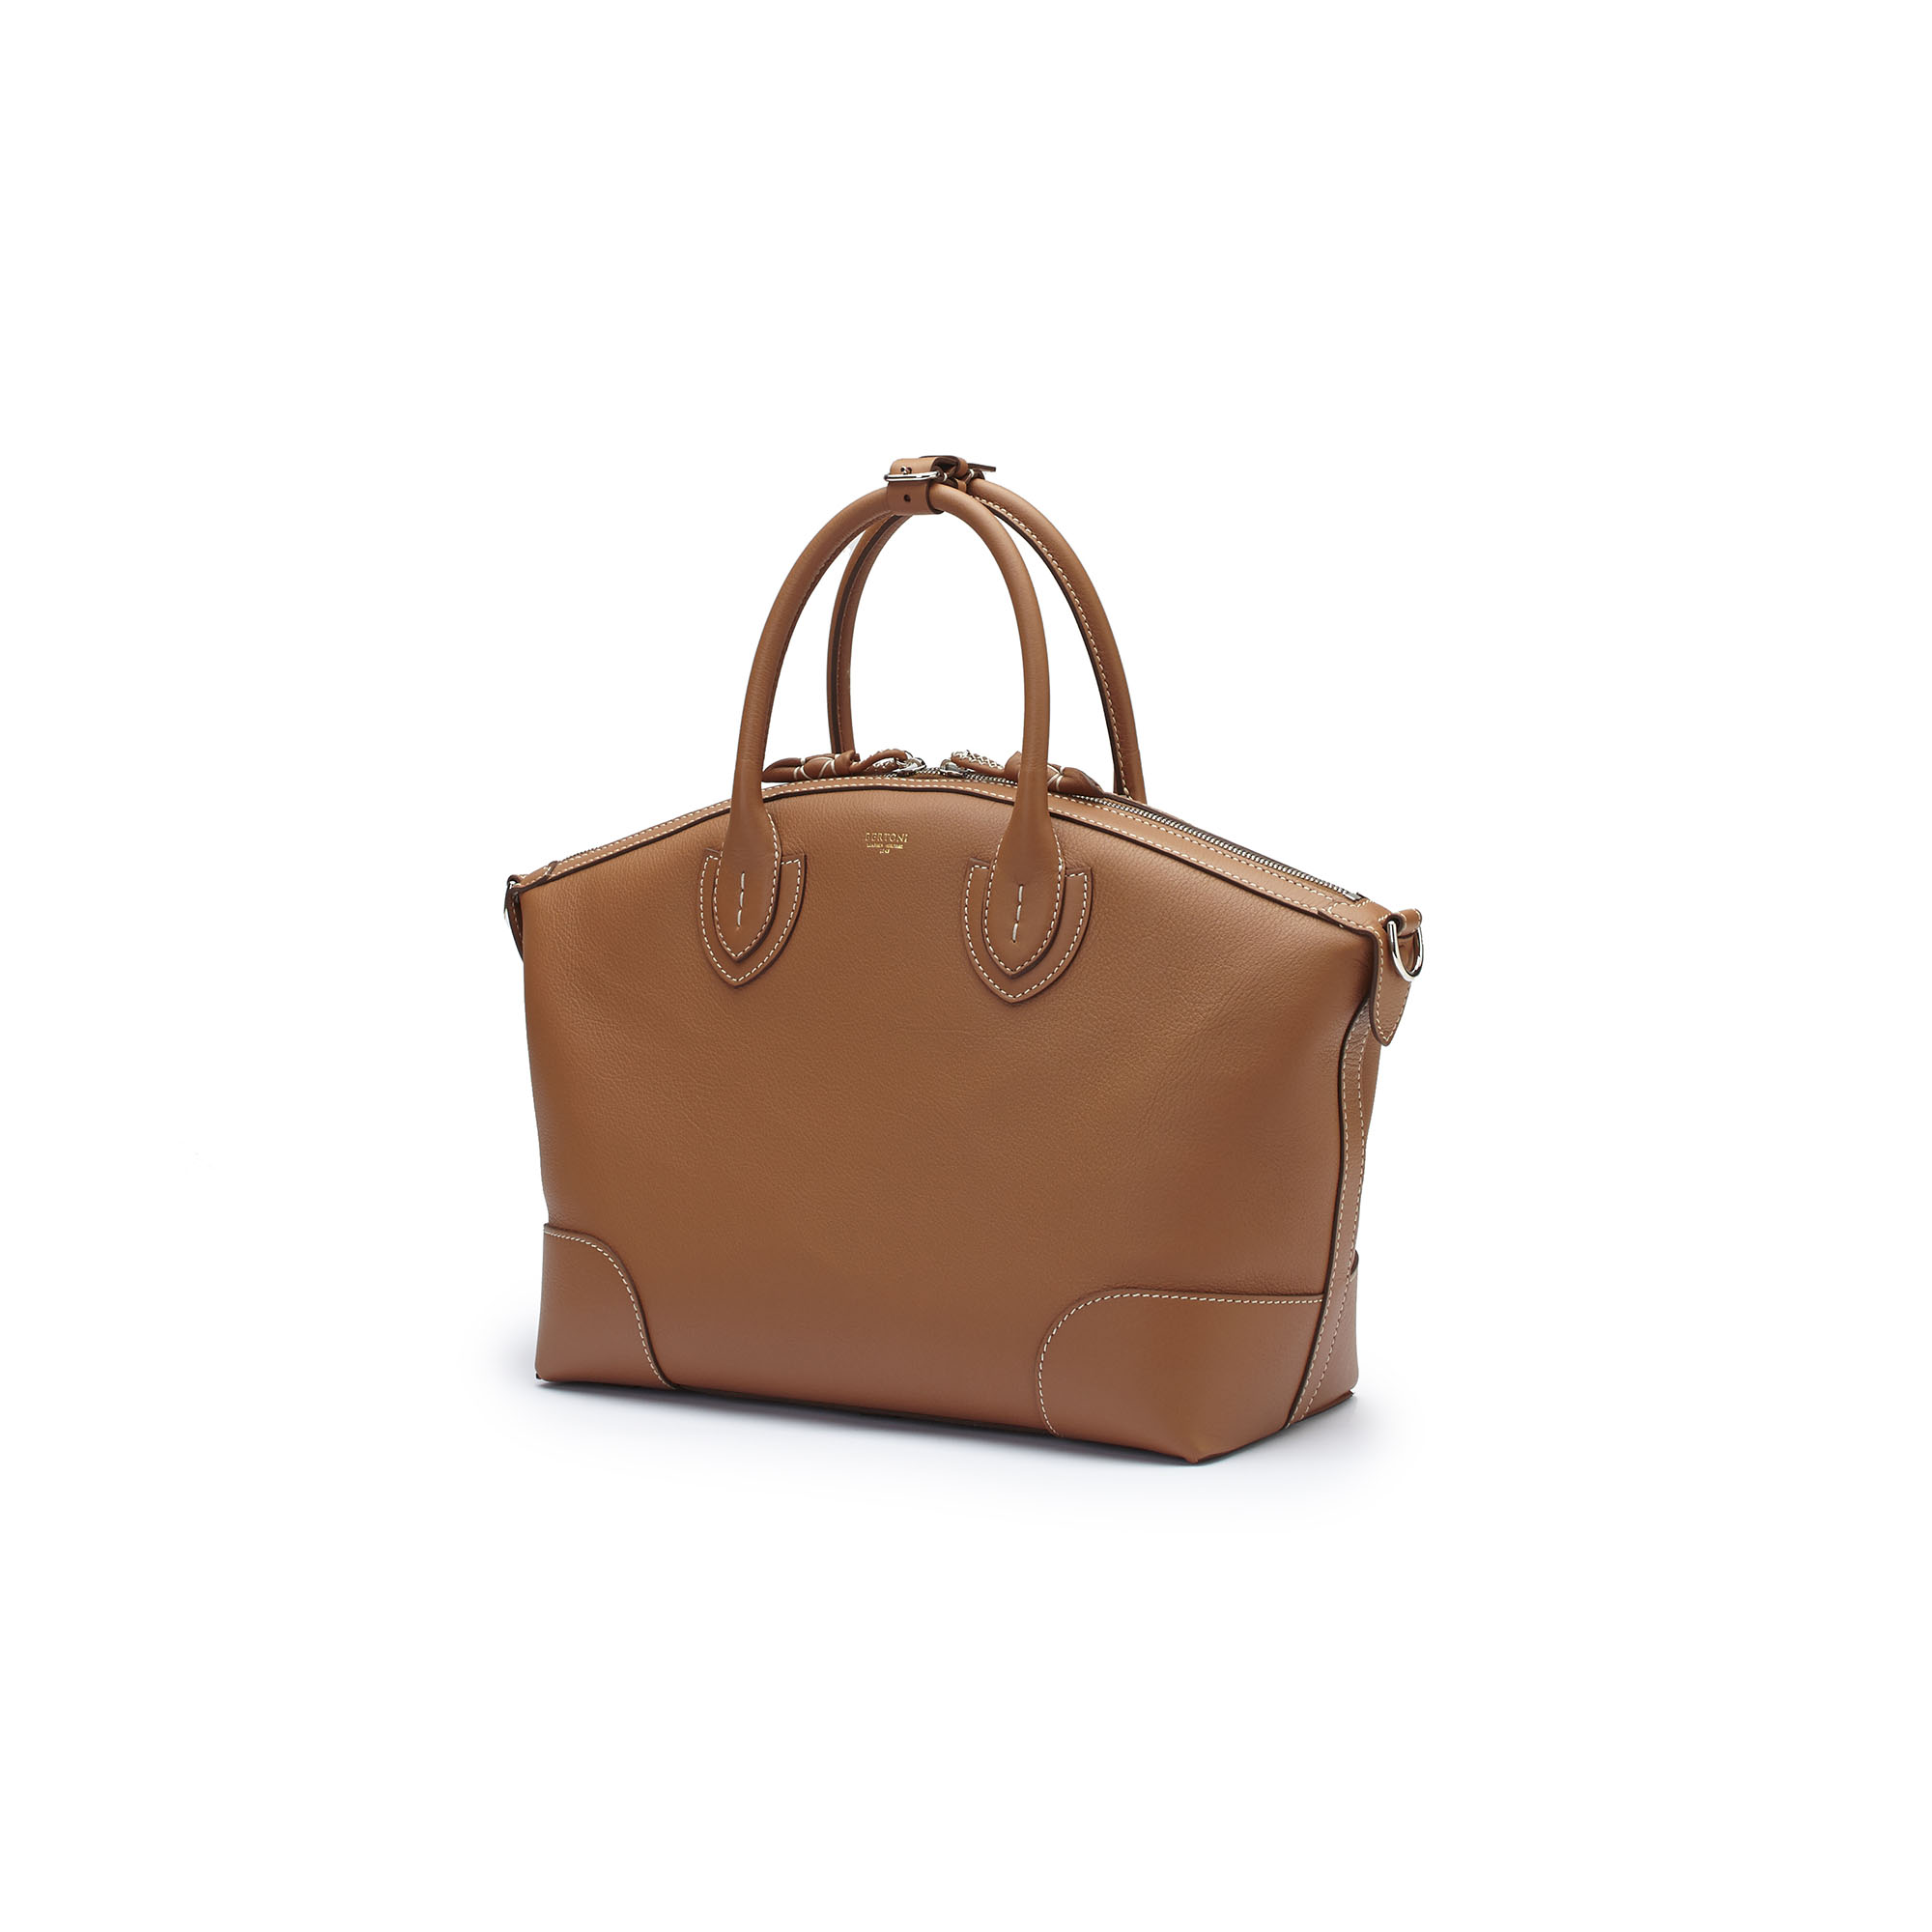 The cognac soft calf Anija bag by Bertoni 1949 02